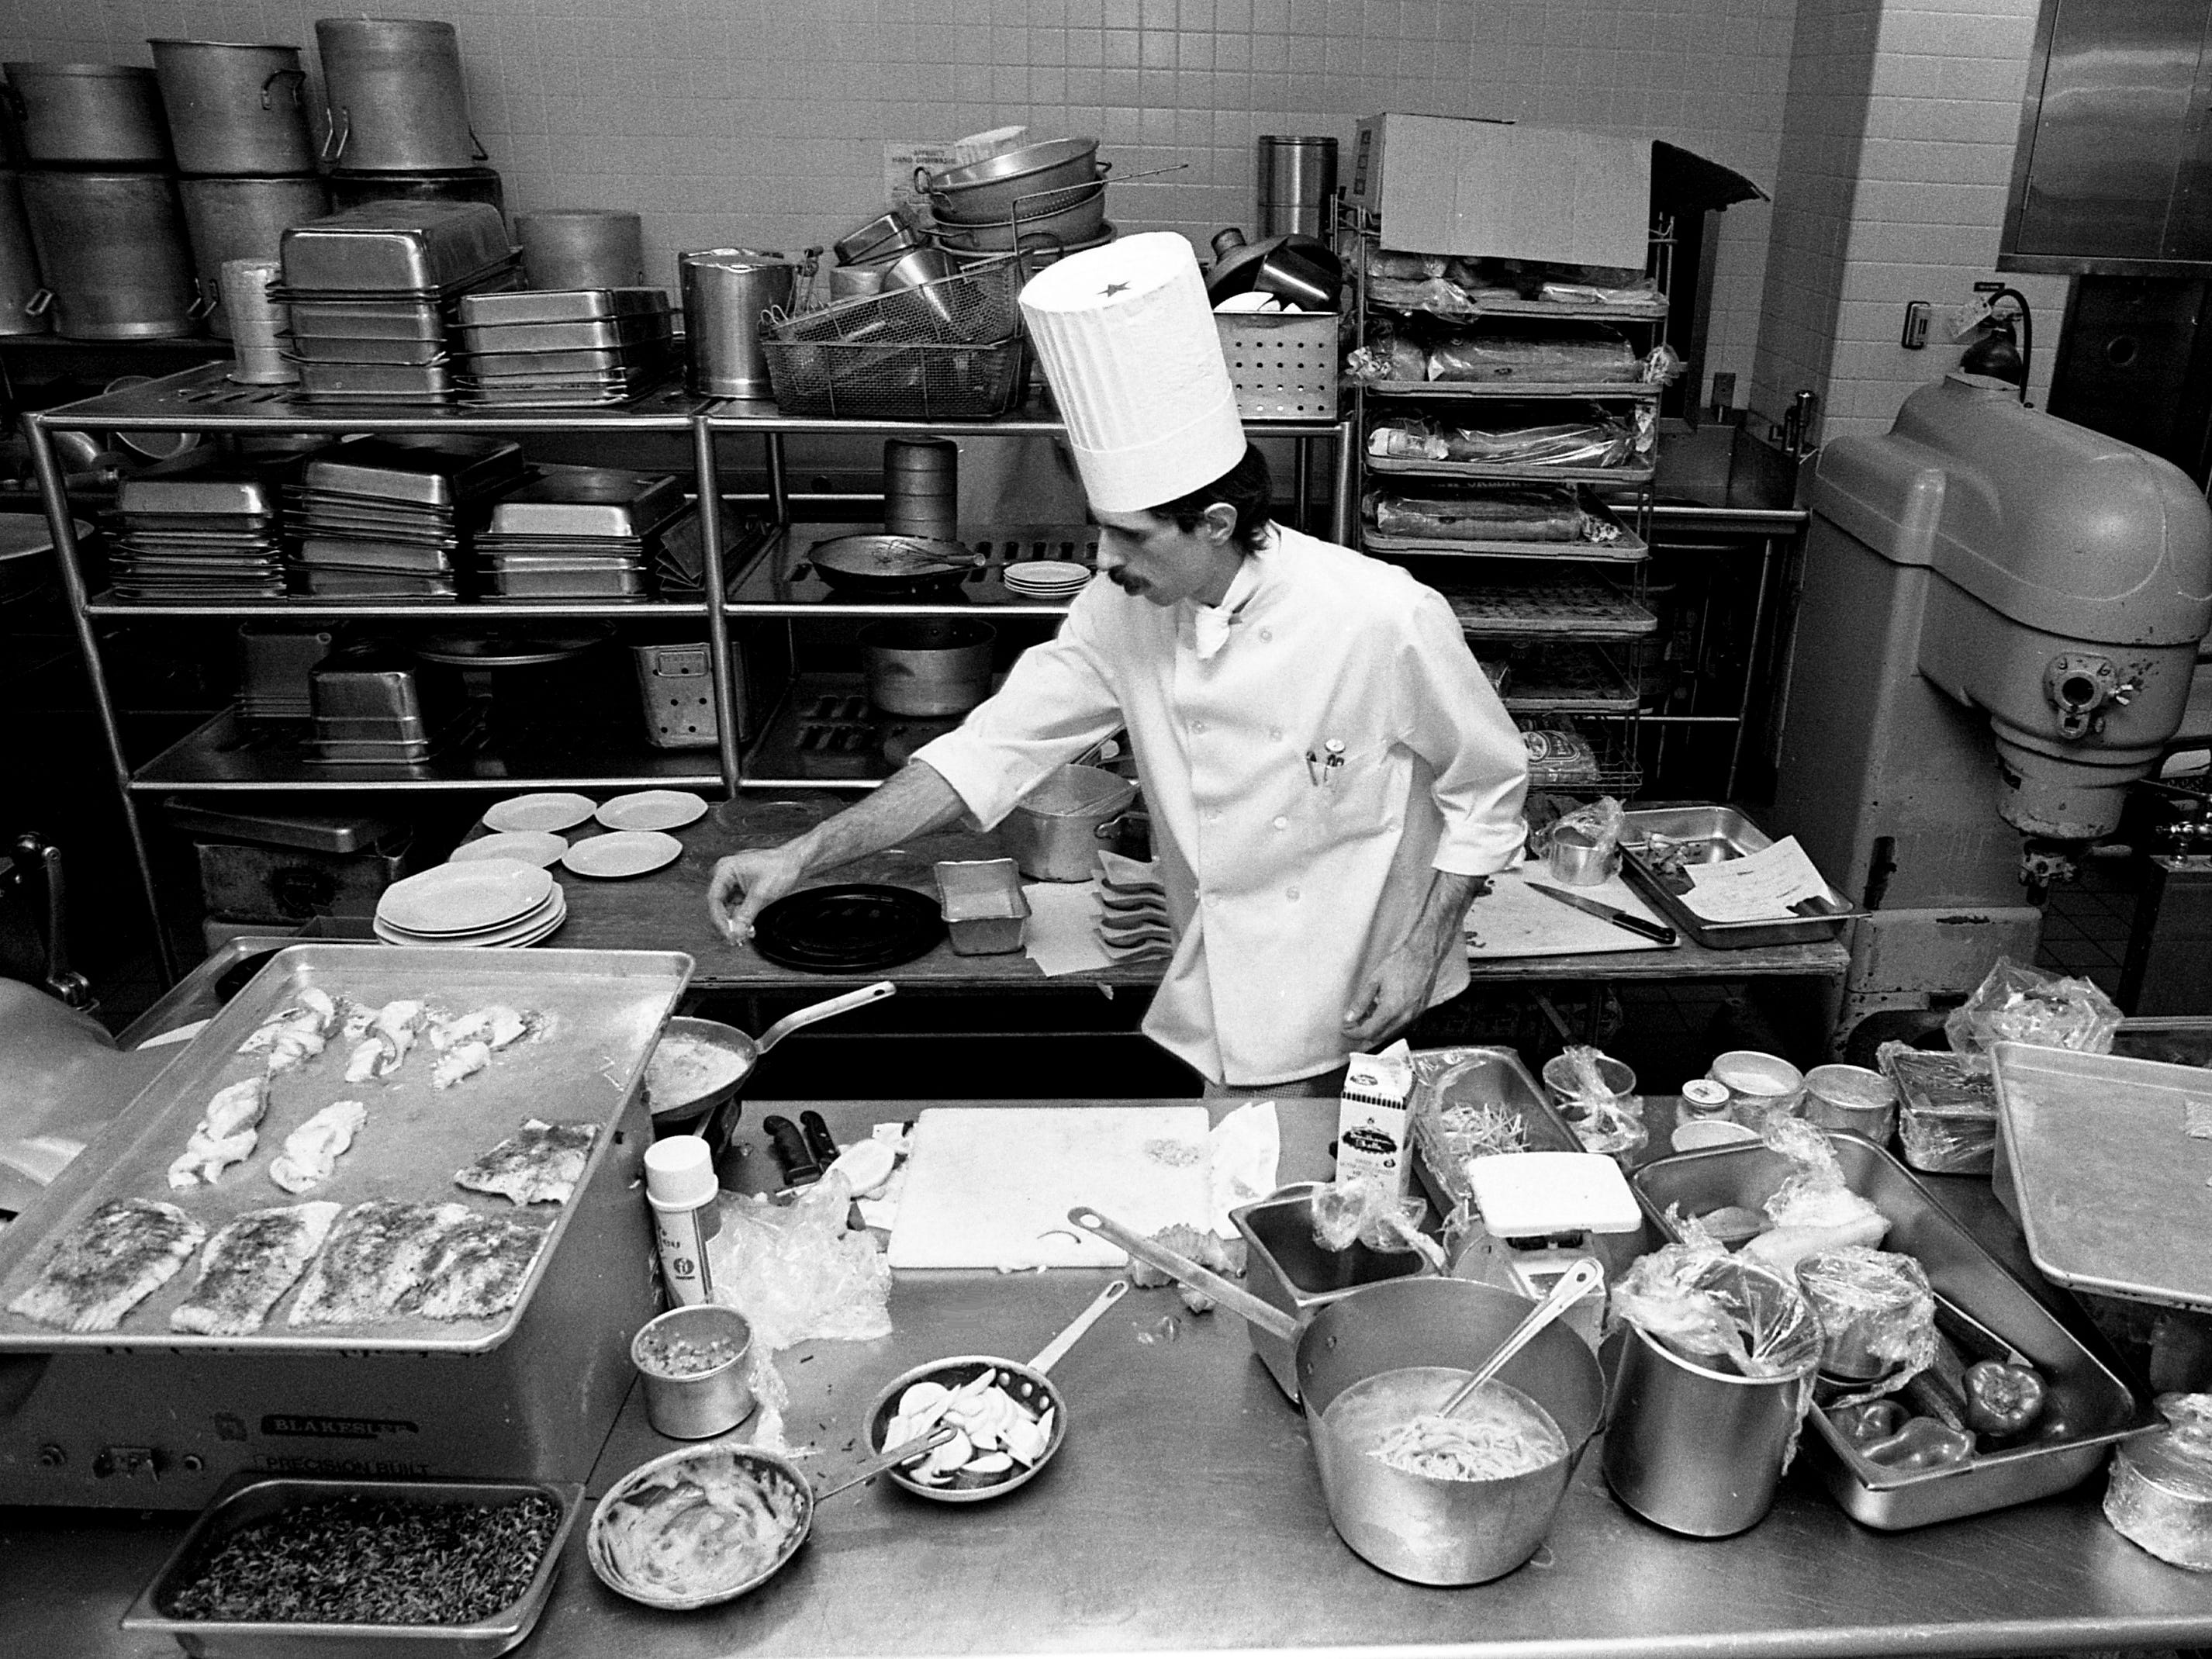 Chef Curtis Benson of the Hyatt Regency prepares his entry for the American Seafood Challenge sponsored by Robert Orr/Sysco at Vanderbilt University's Branscomb Hall on Feb. 4, 1989.